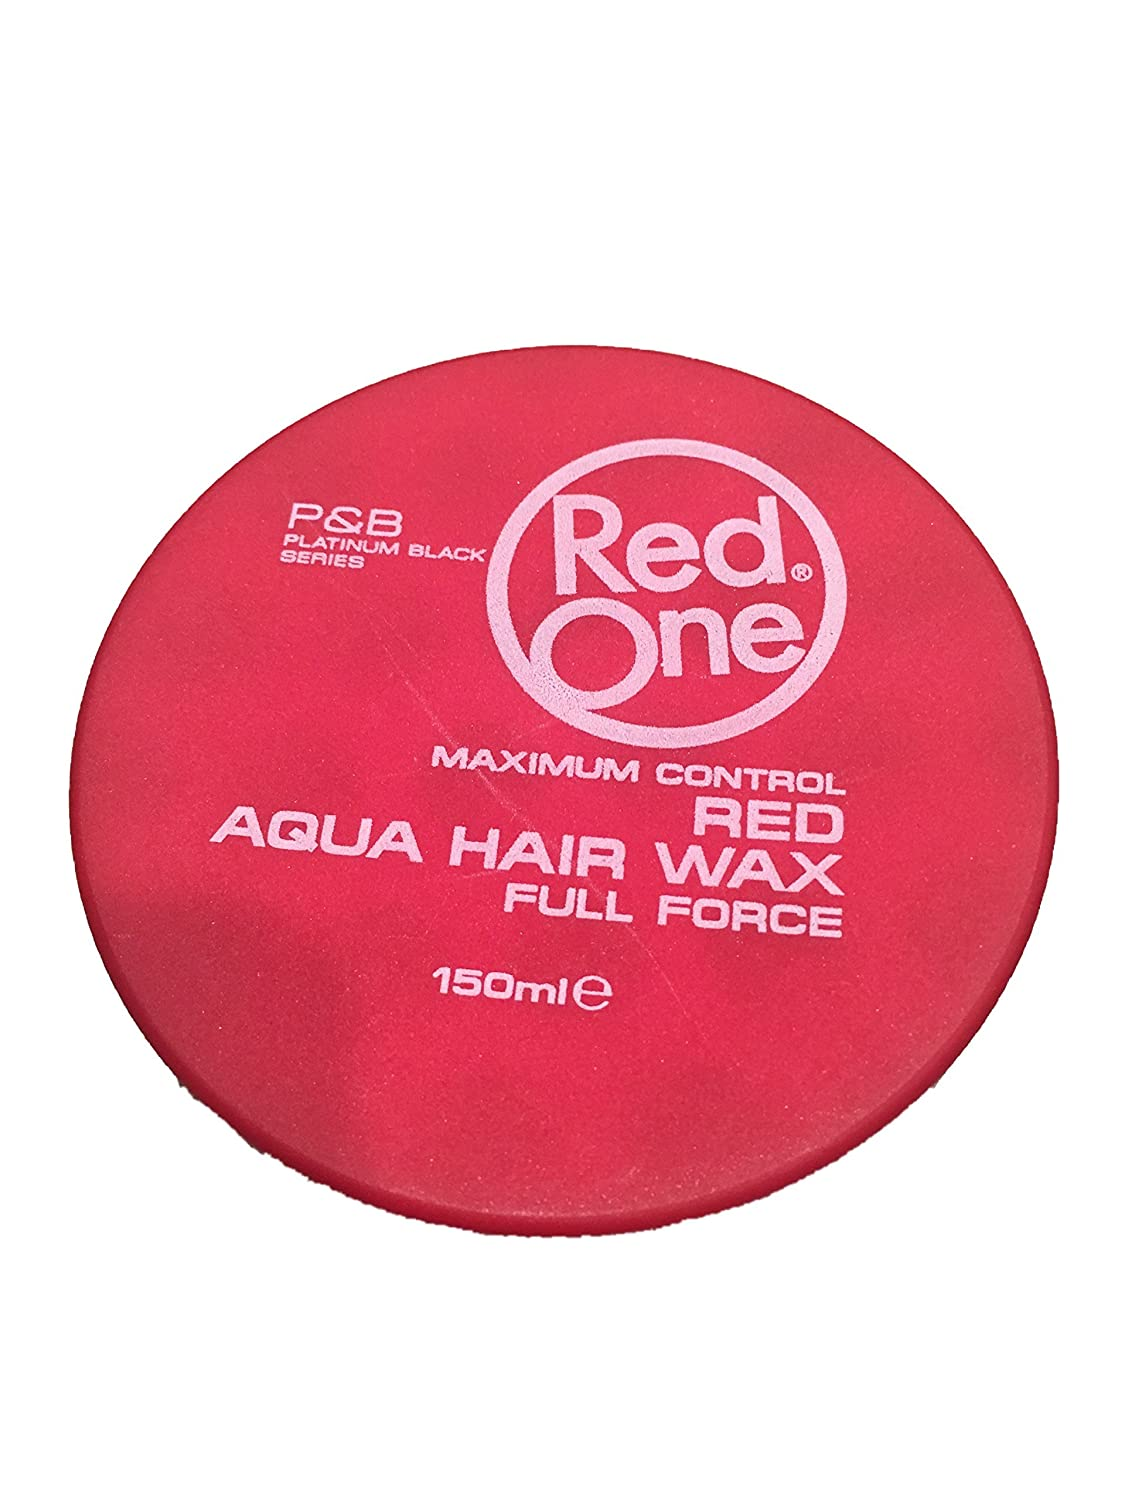 Red One Red Aqua Hair Wax 150ml NEW Platinum Black Series Hair Styling Pomade Strawberry Scent by Red One 7439